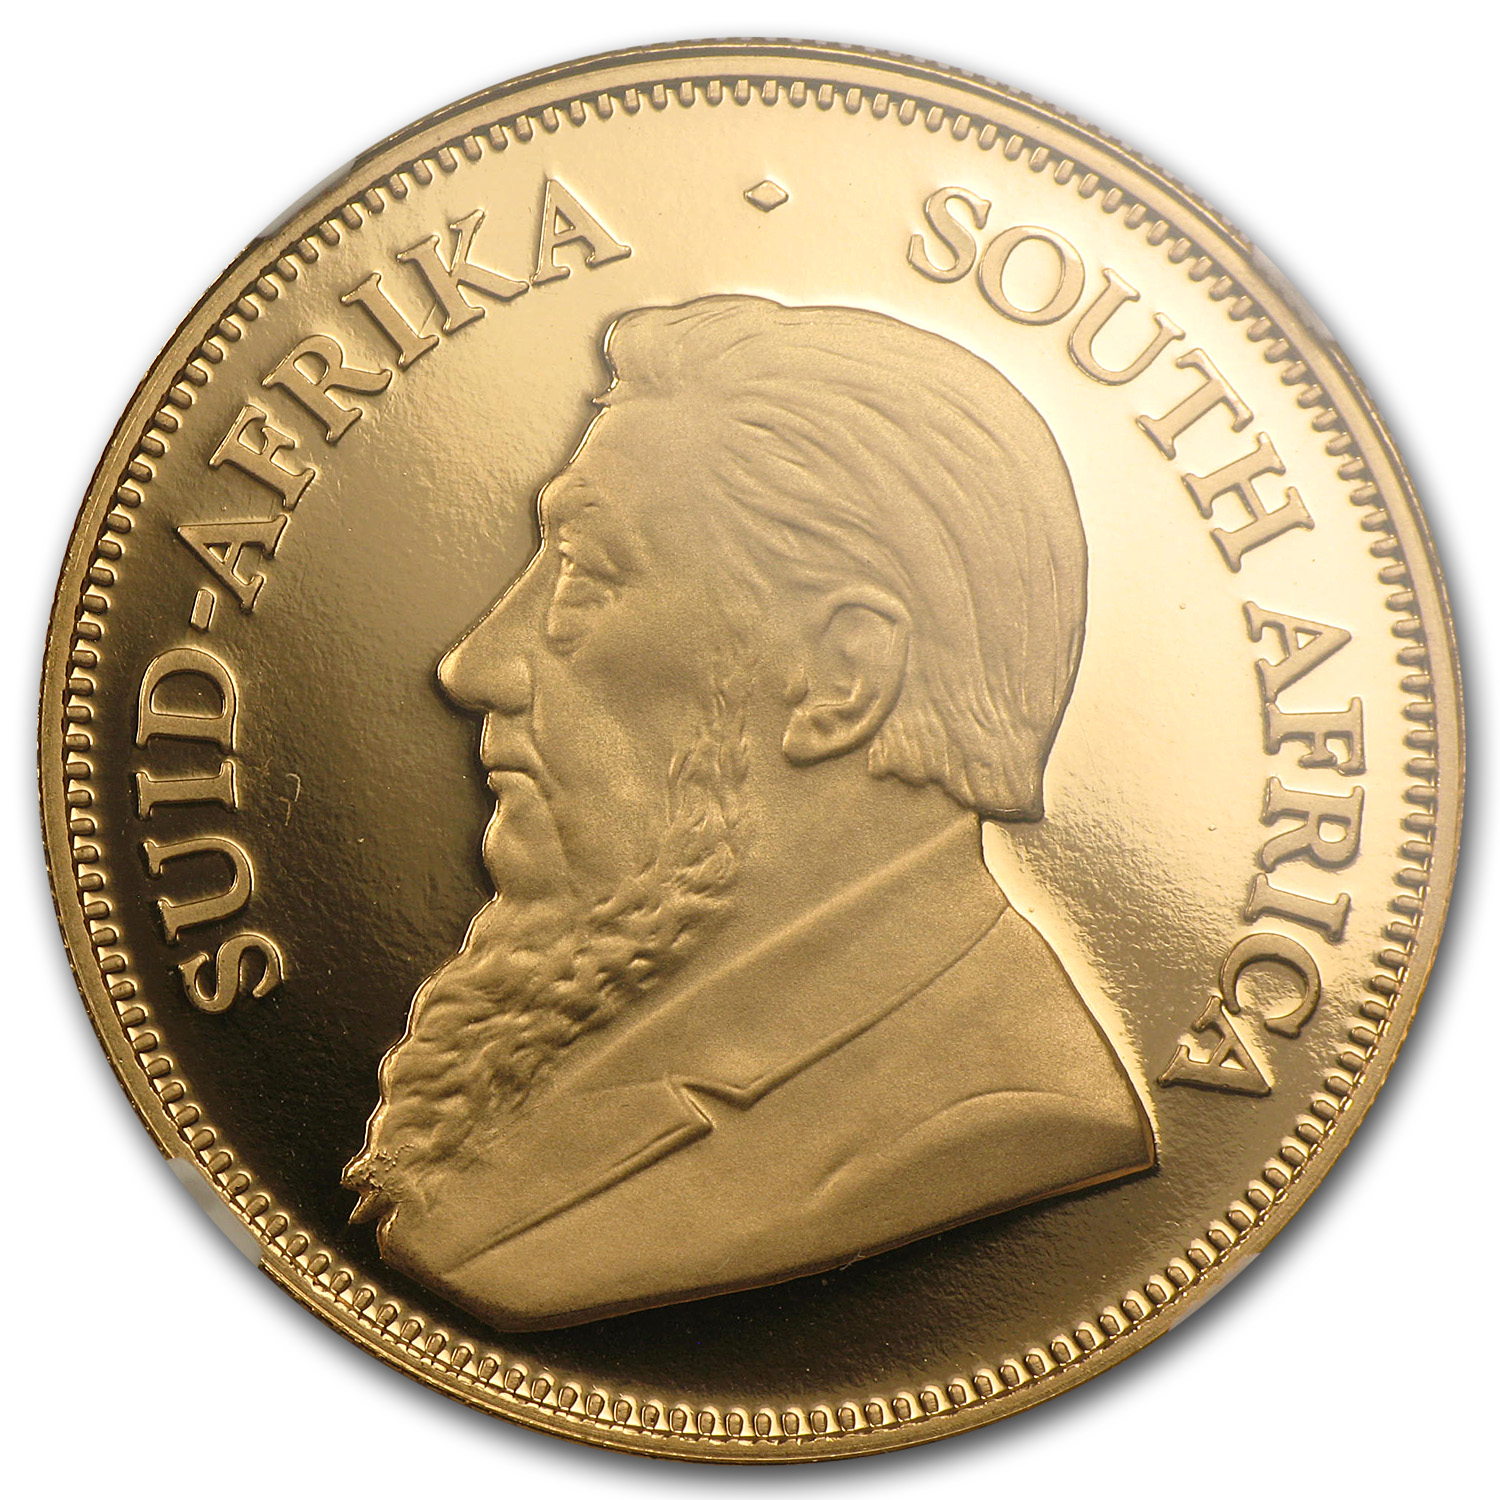 2002 South Africa 1 oz Gold Krugerrand PF-69 NGC